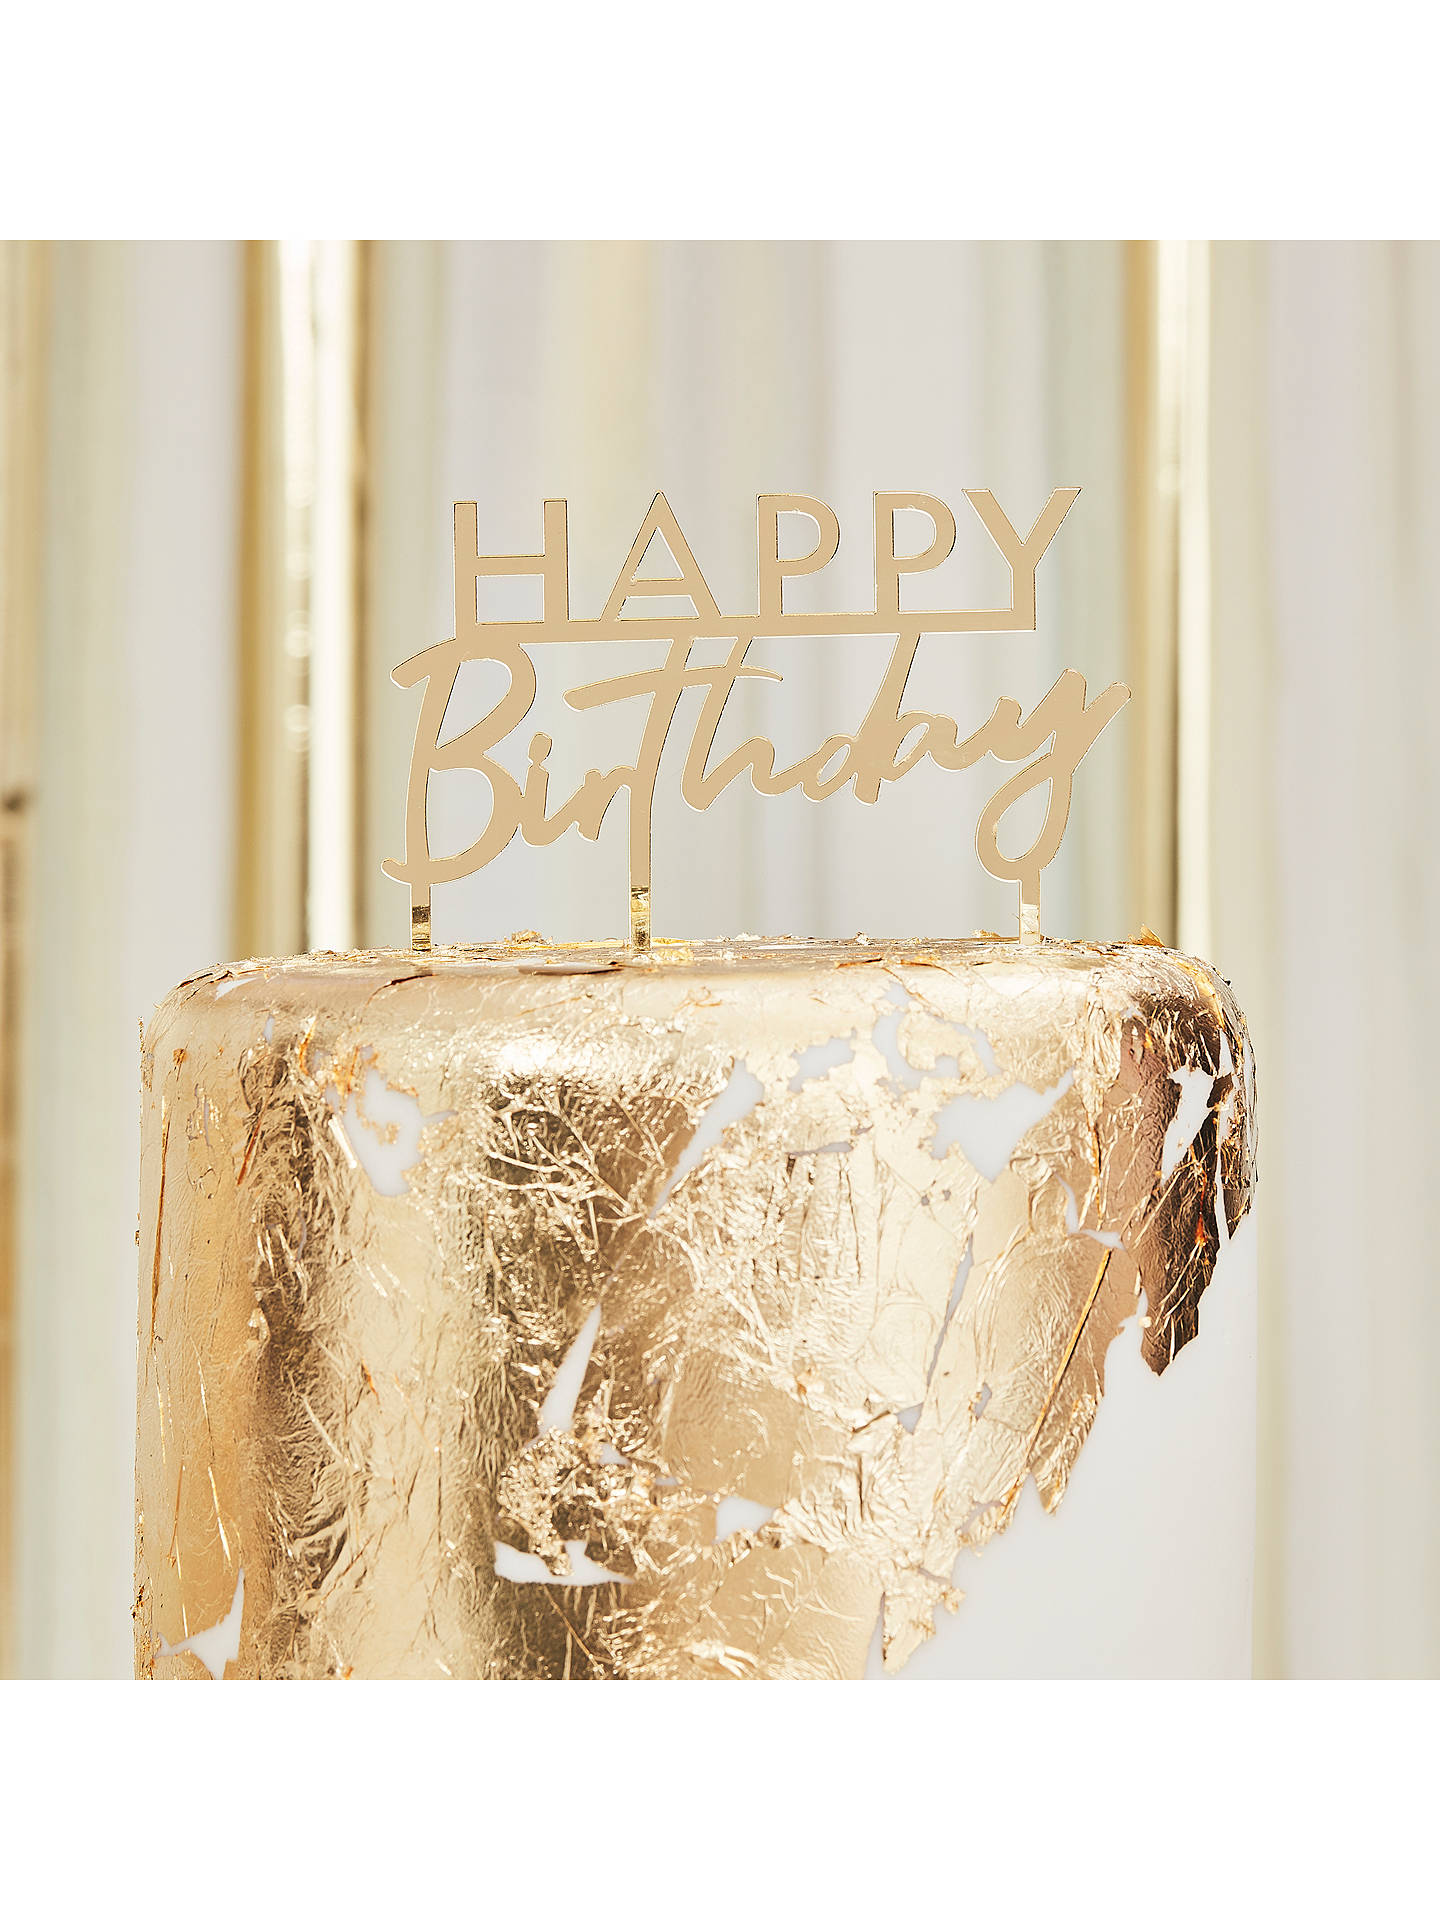 Sensational Ginger Ray Gold Happy Birthday Cake Topper At John Lewis Partners Personalised Birthday Cards Petedlily Jamesorg